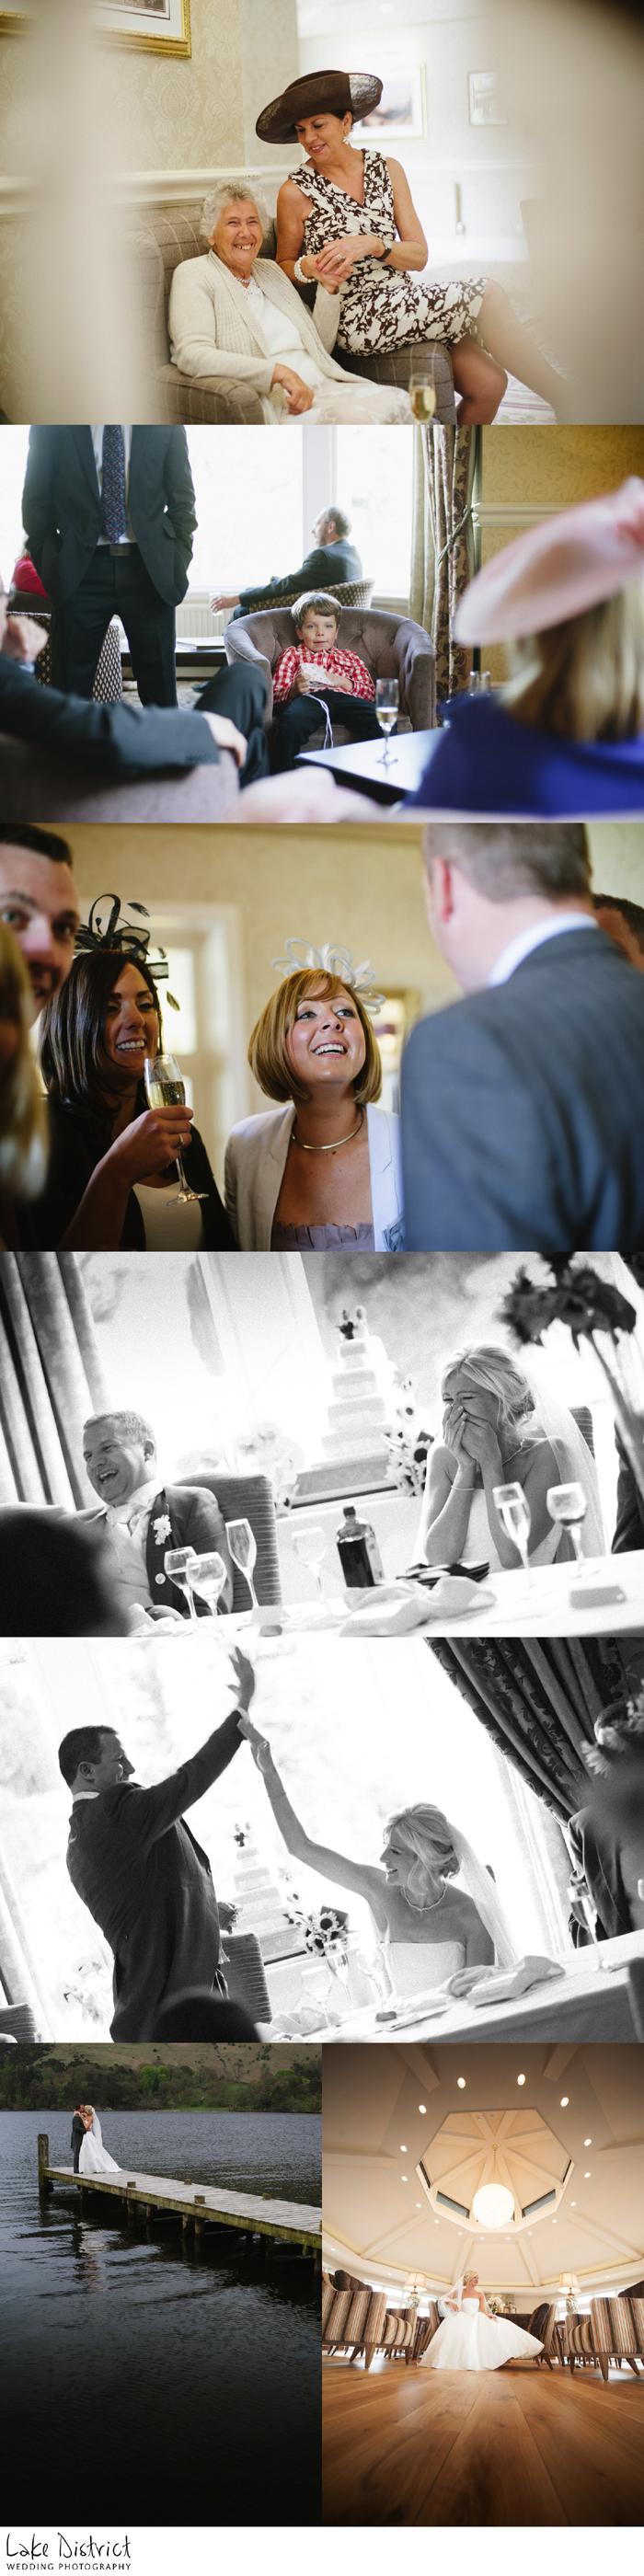 awesome rock 'n' roll images from a cumbrian wedding at inn on the lake